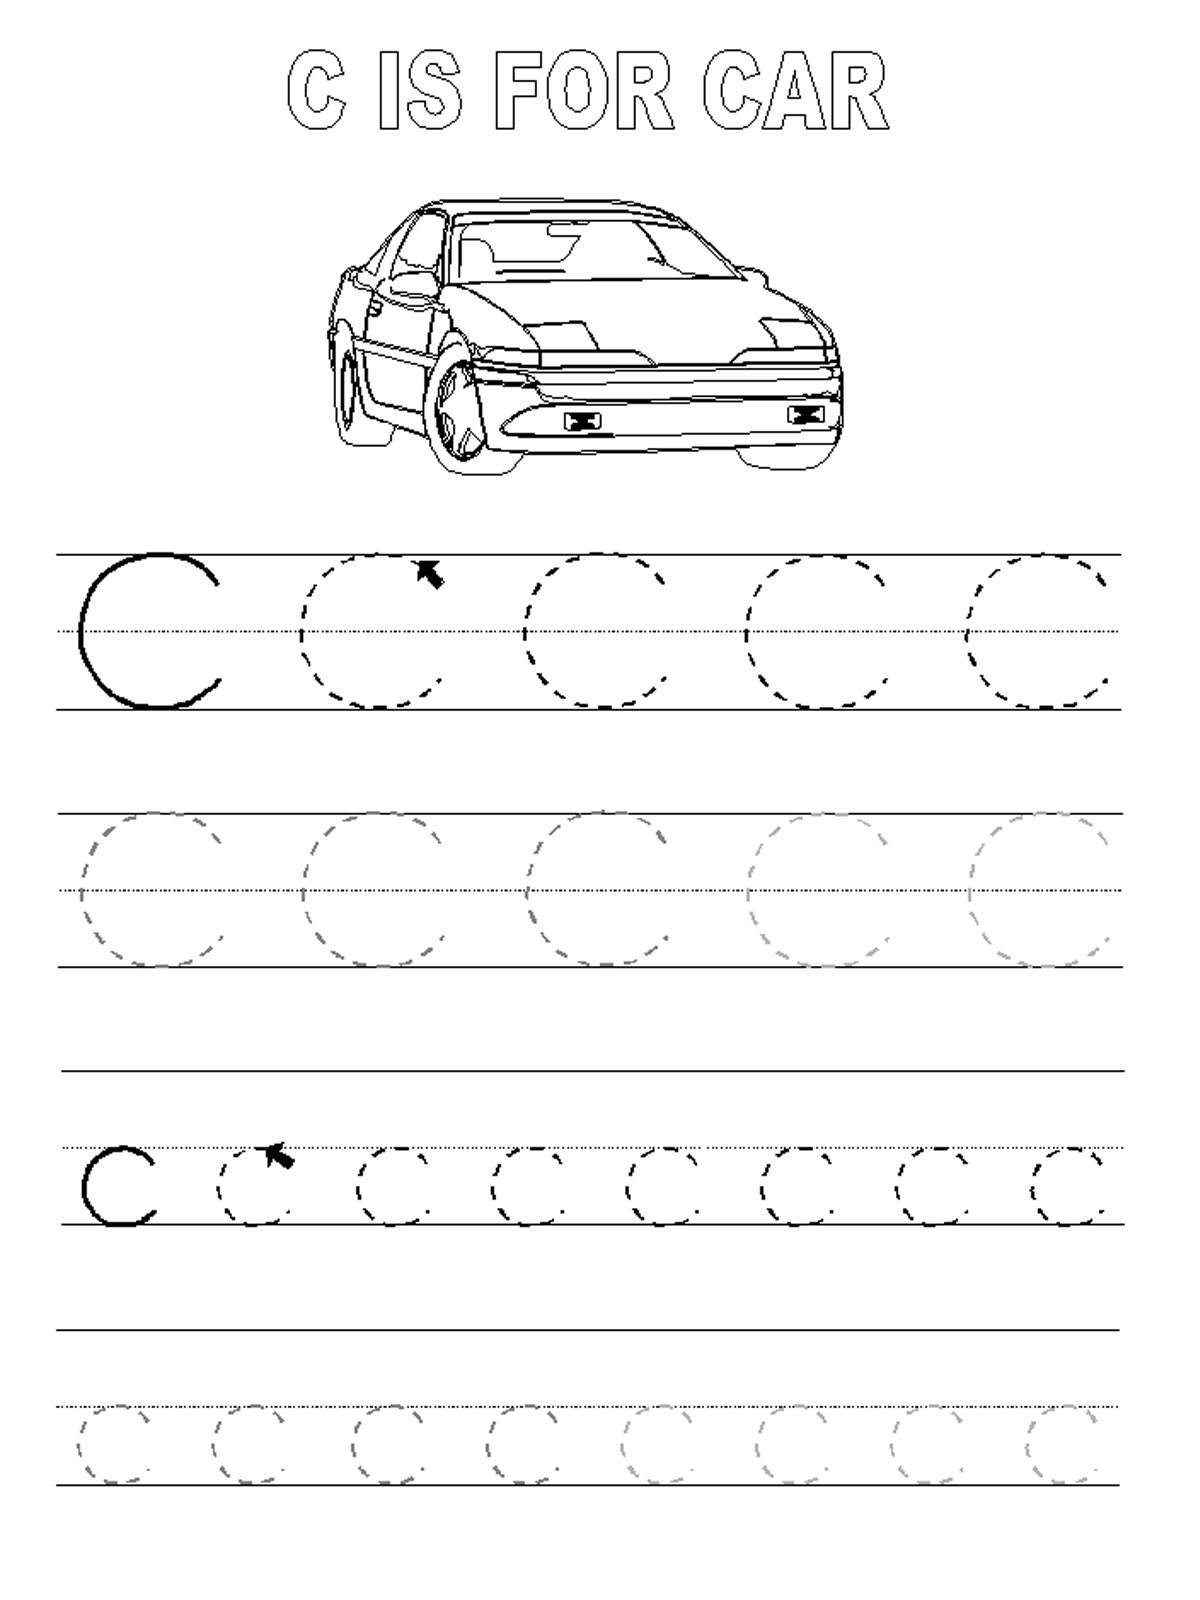 Worksheet Letter C Worksheets Preschool trace the letter c worksheets activity shelter for kids